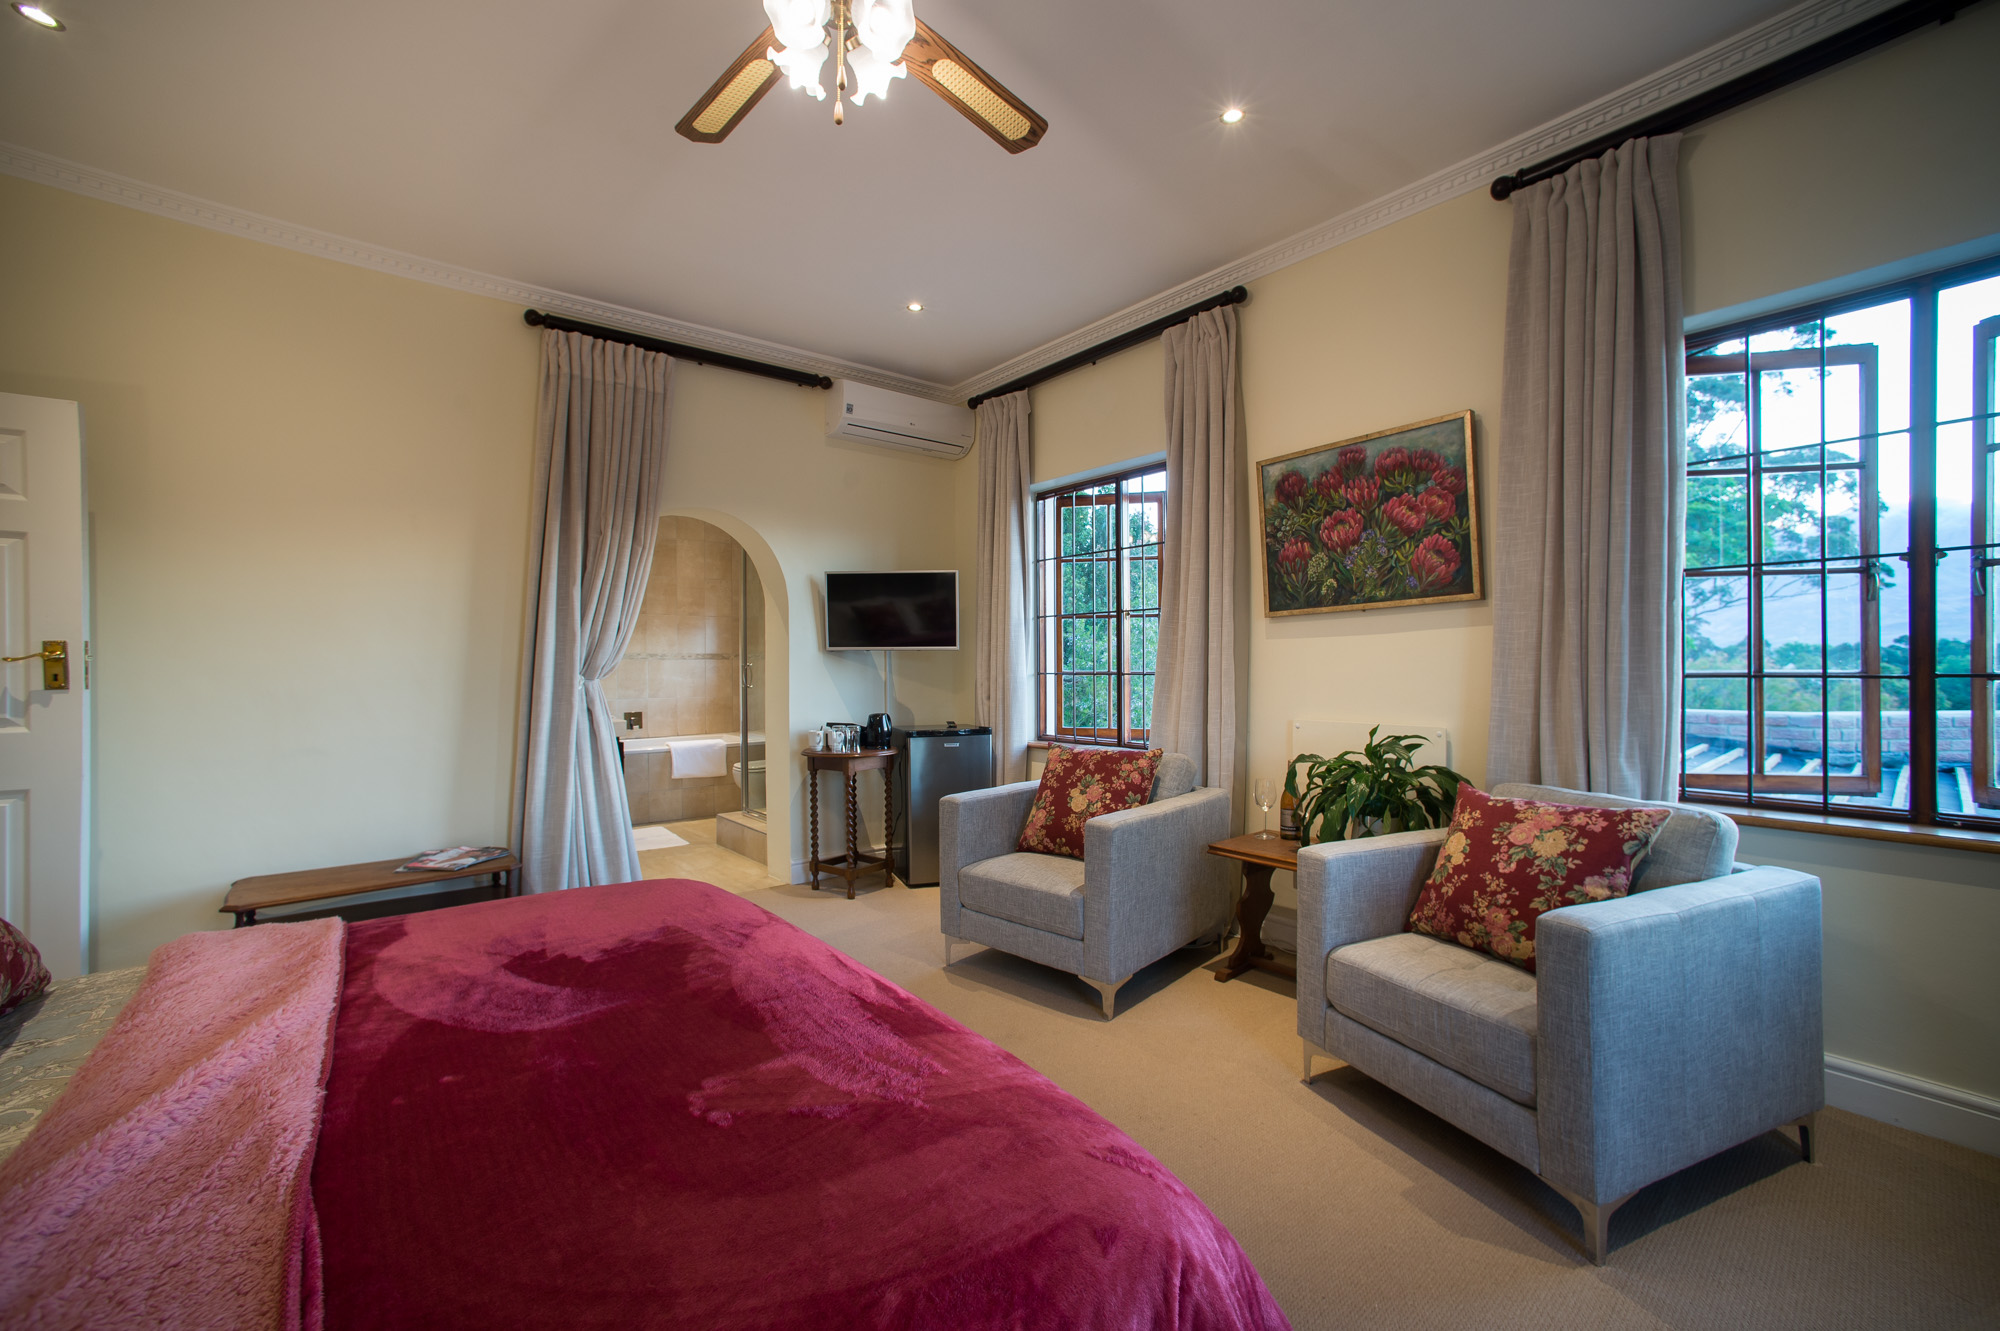 boutique de sortie les clients d'abord acheter maintenant Guest House Accommodation in Somerset West - Boutique Villa